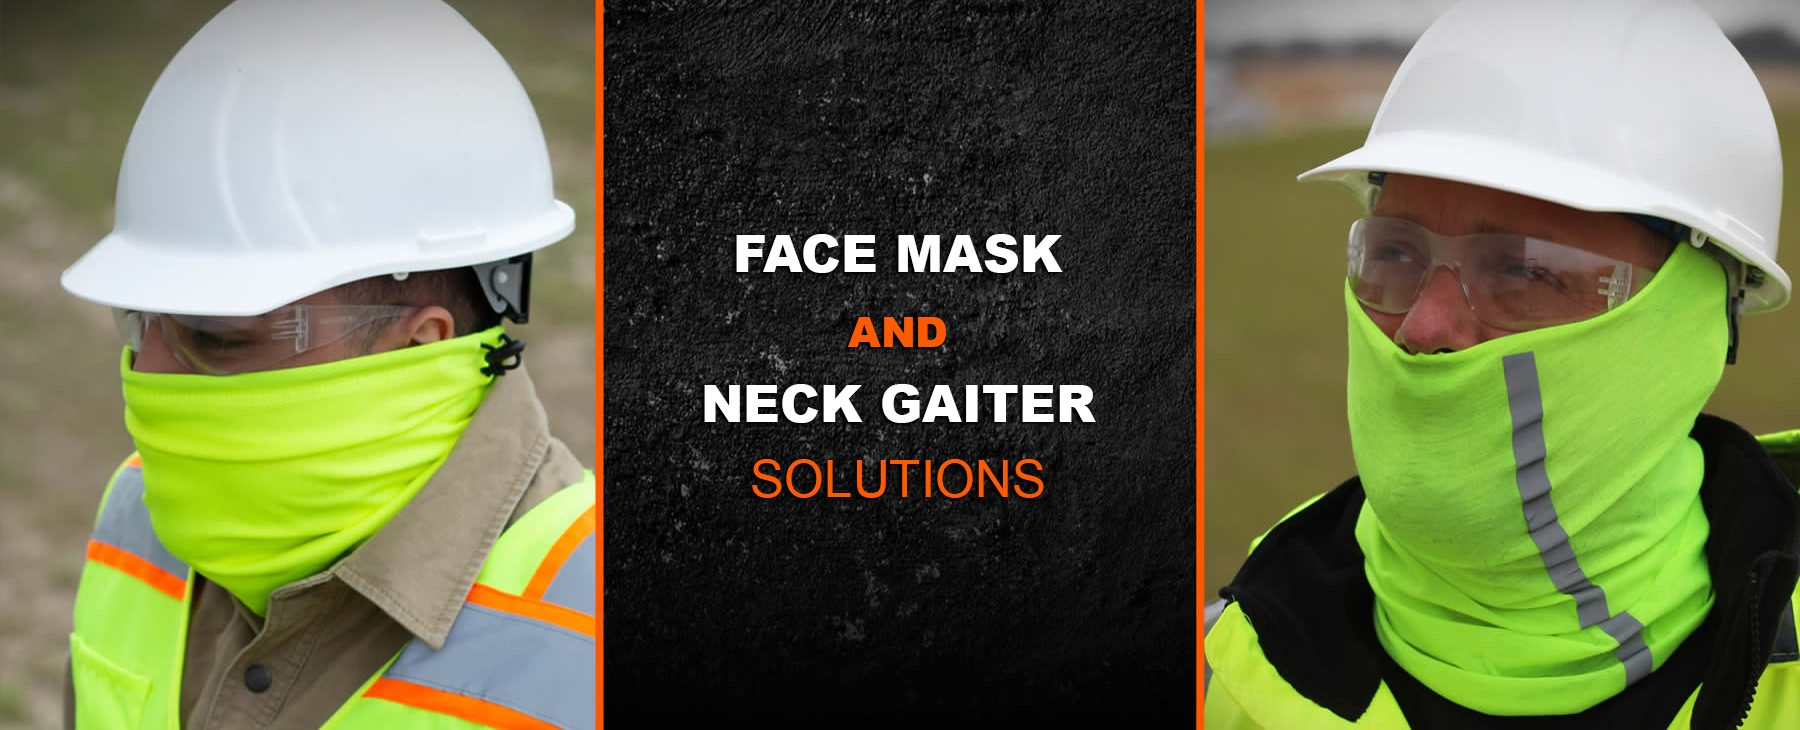 Fask Mask and Neck Gaiter Solutions